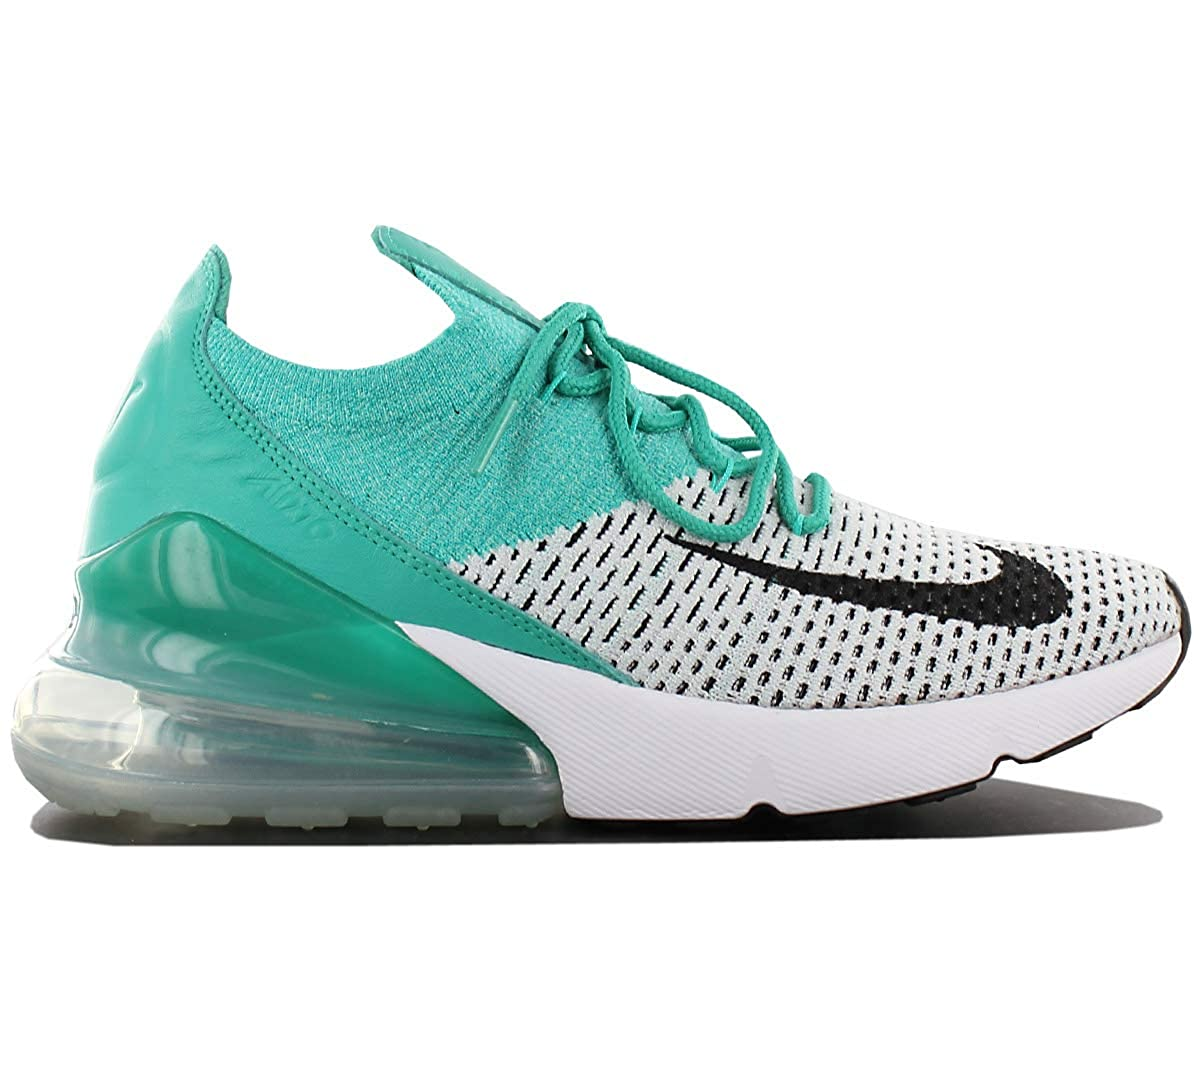 078e74e5ddee NIKE Air Max 270 Flyknit Womens Running Shoes Grey-White-Green Womens  Trainers Sneaker Shoes  Amazon.co.uk  Shoes   Bags